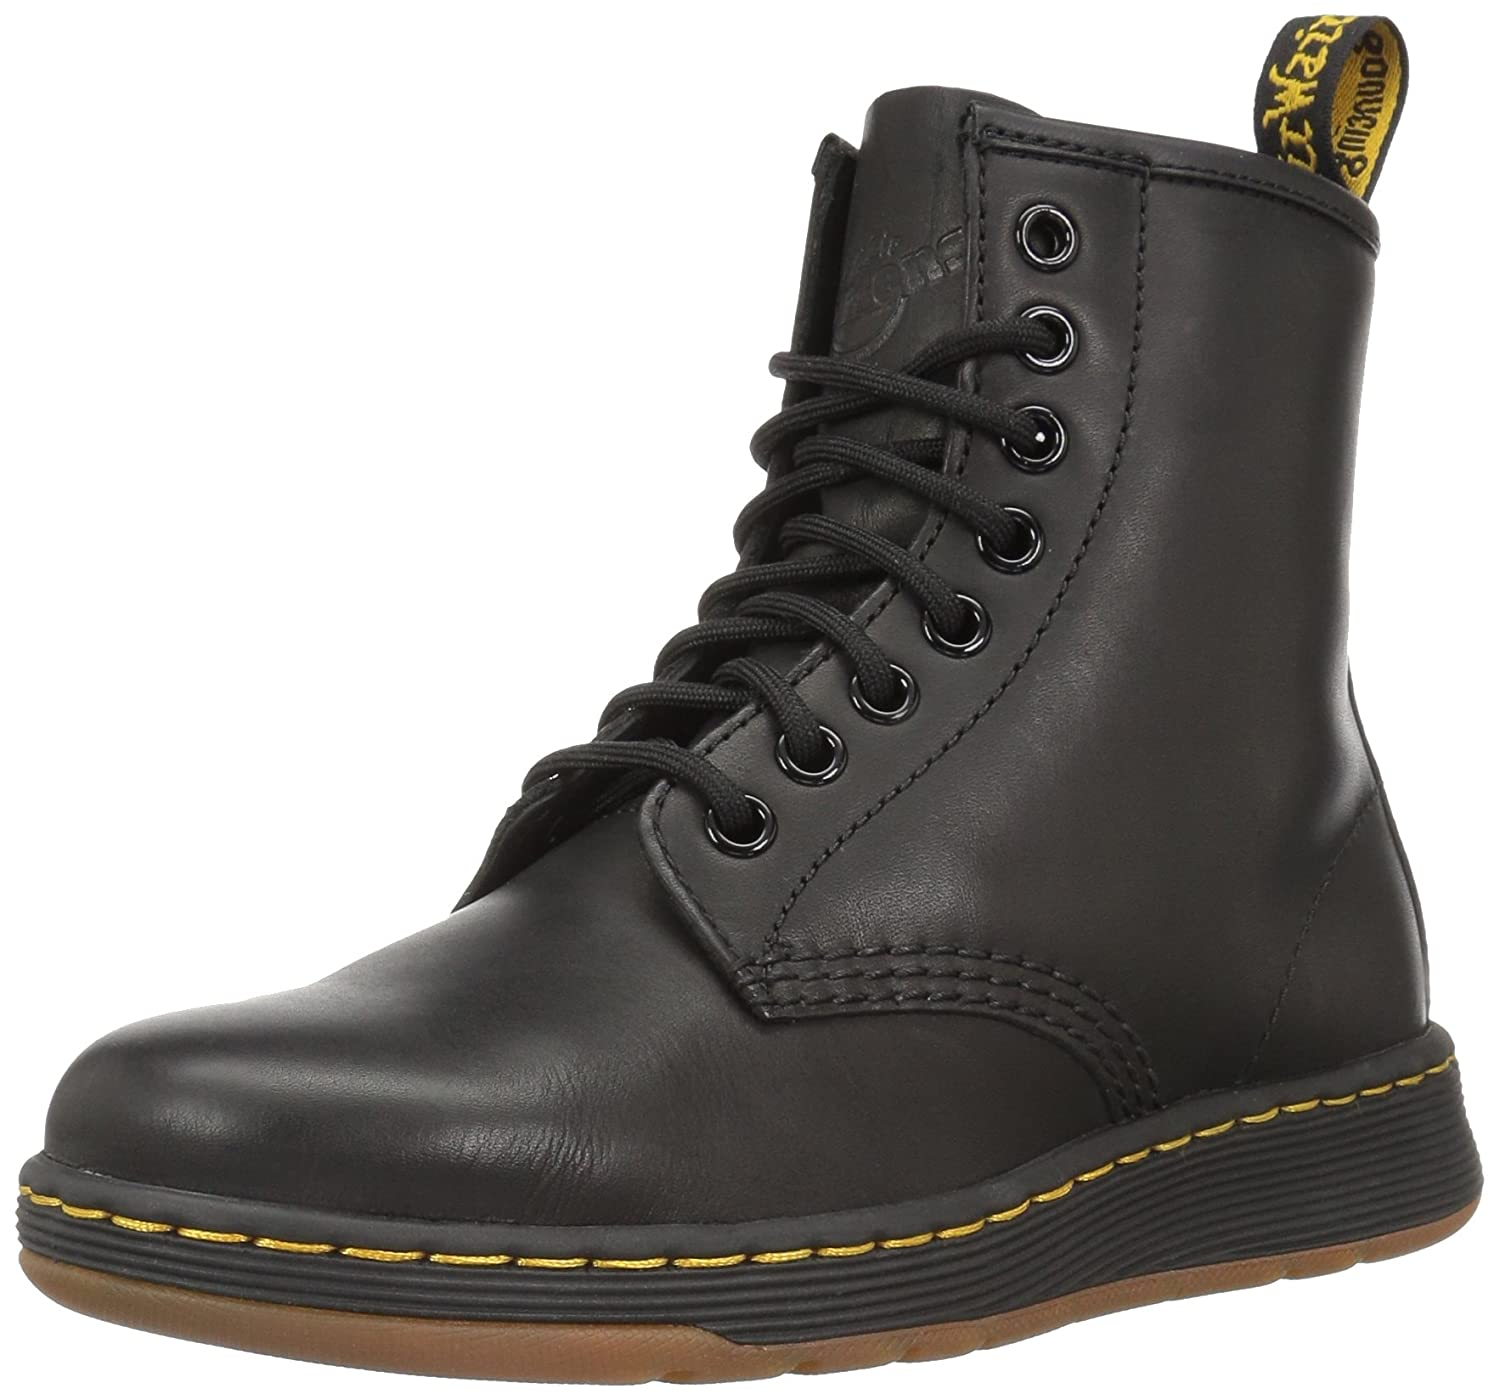 Dr. Martens Men's Newton Boot B01AOHNLSQ 10 UK/11 M US|Black